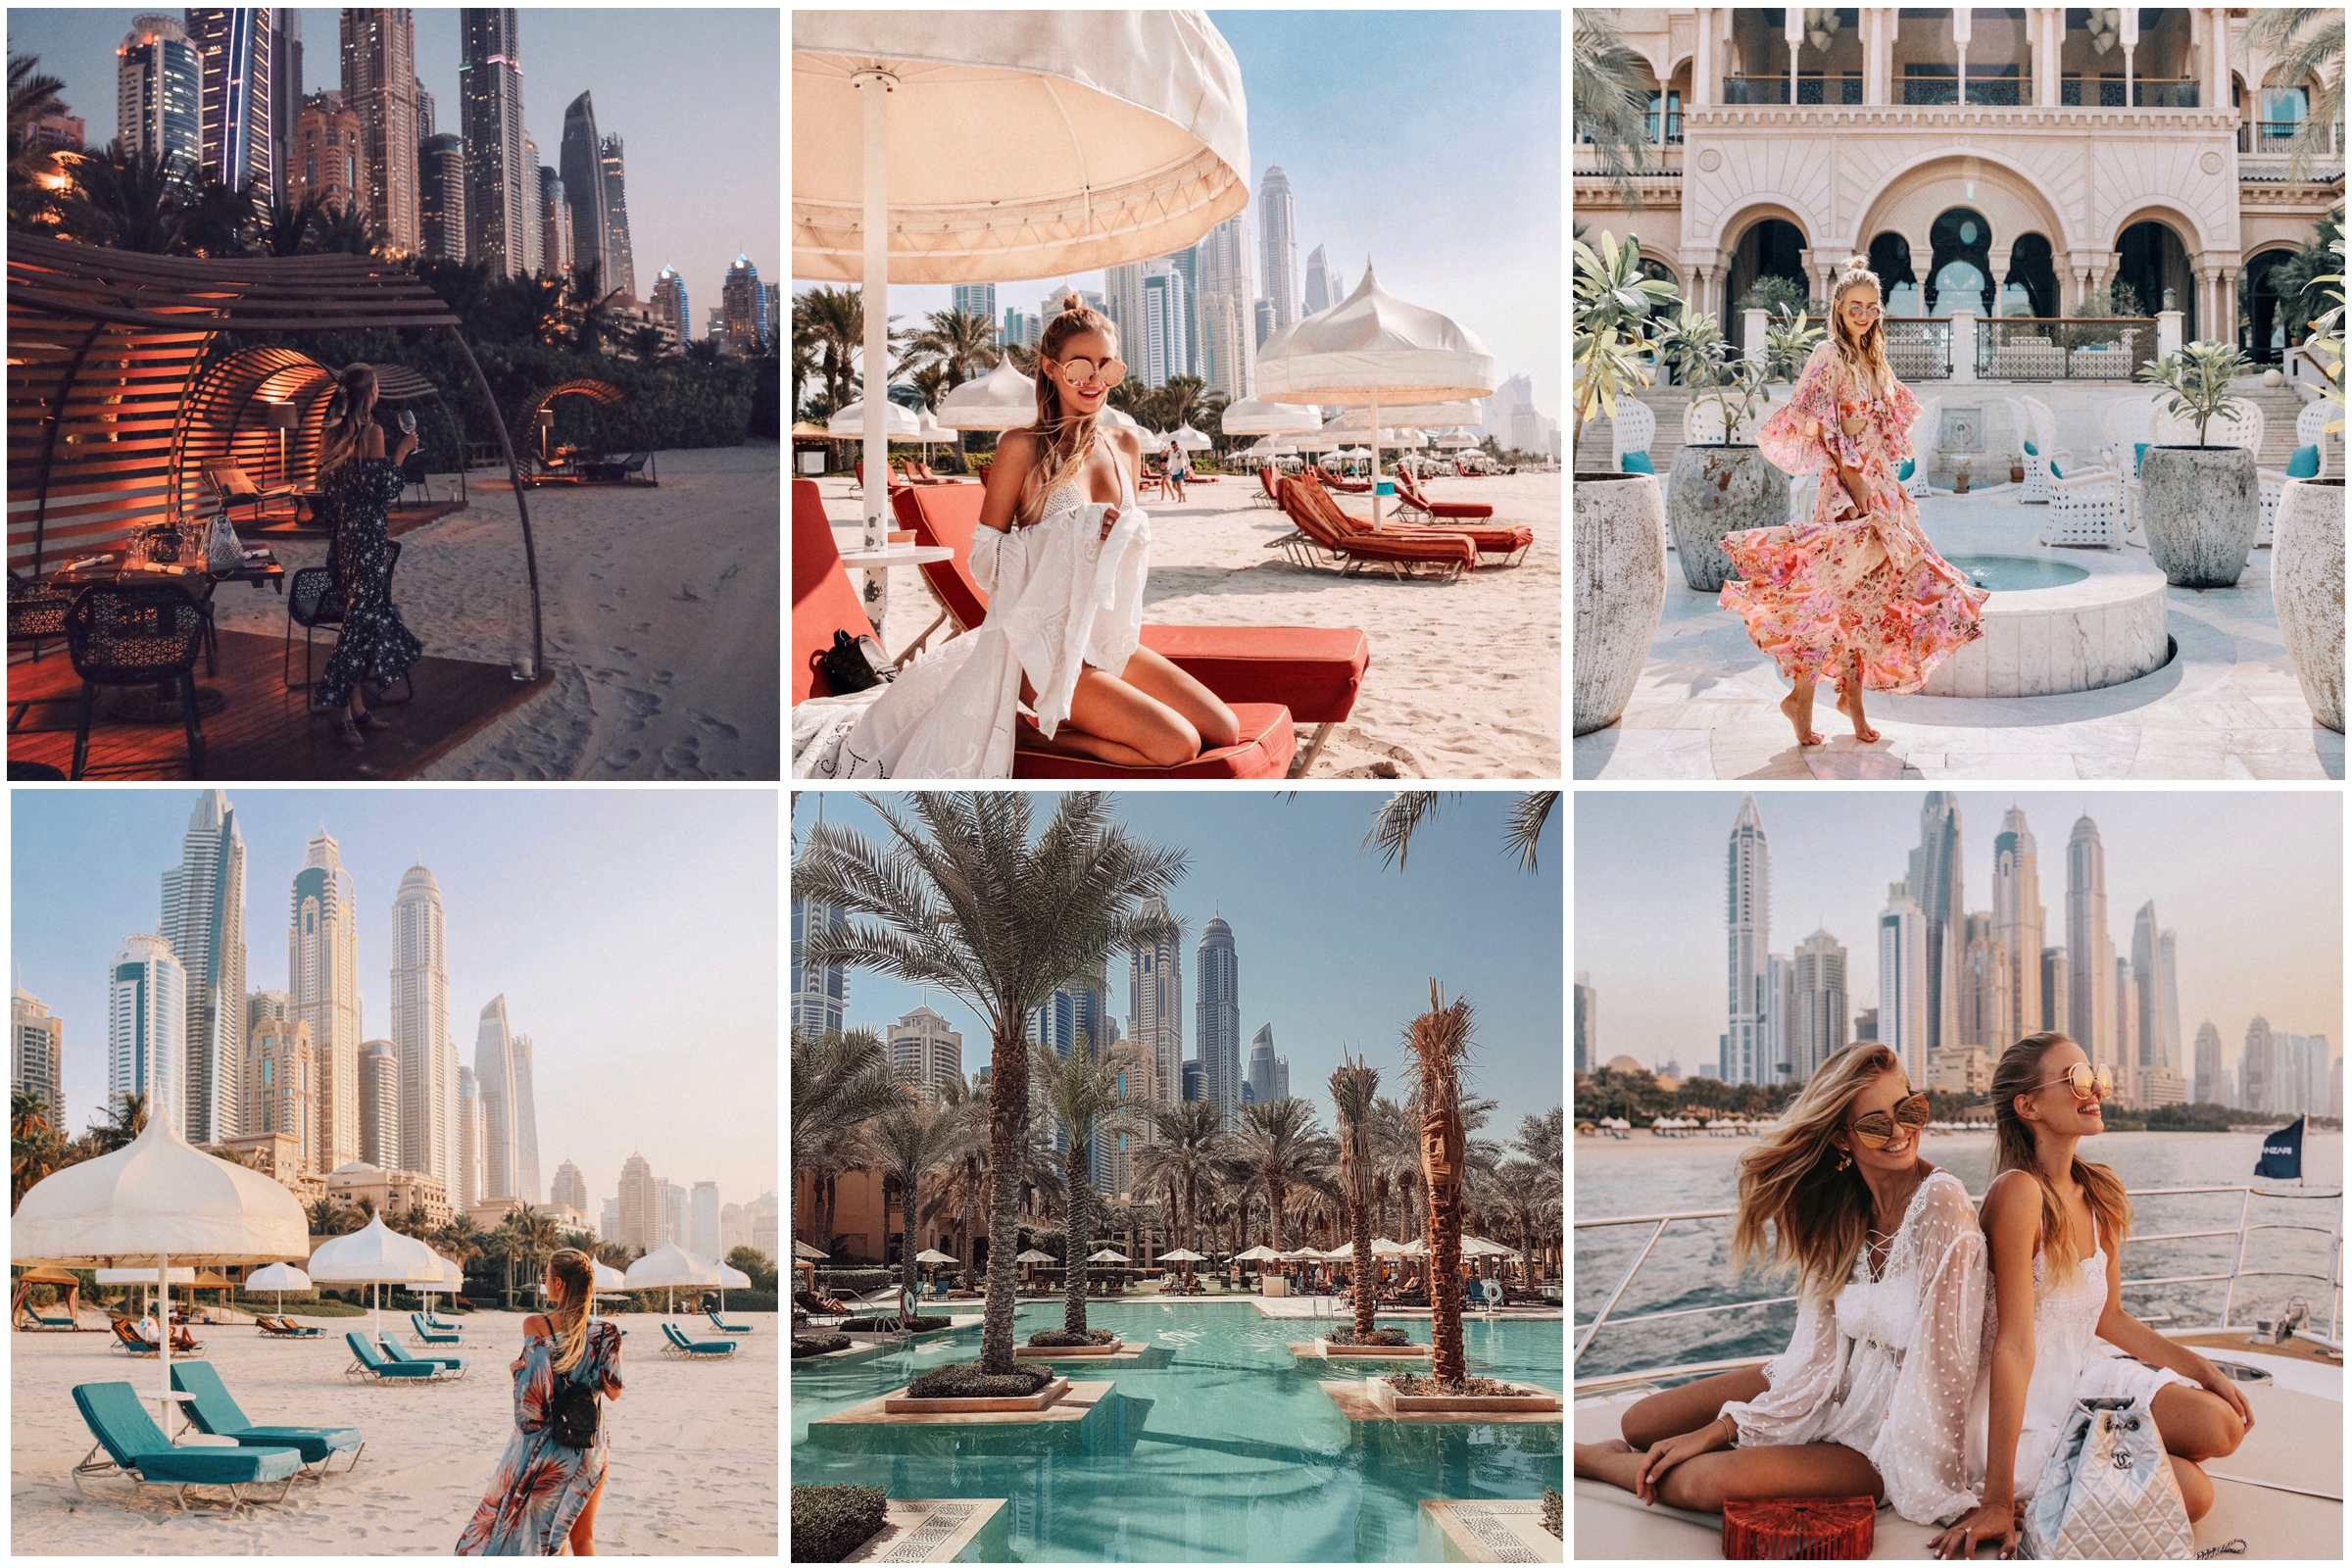 Linda Farrow x One & Only | Dubai & Maldives